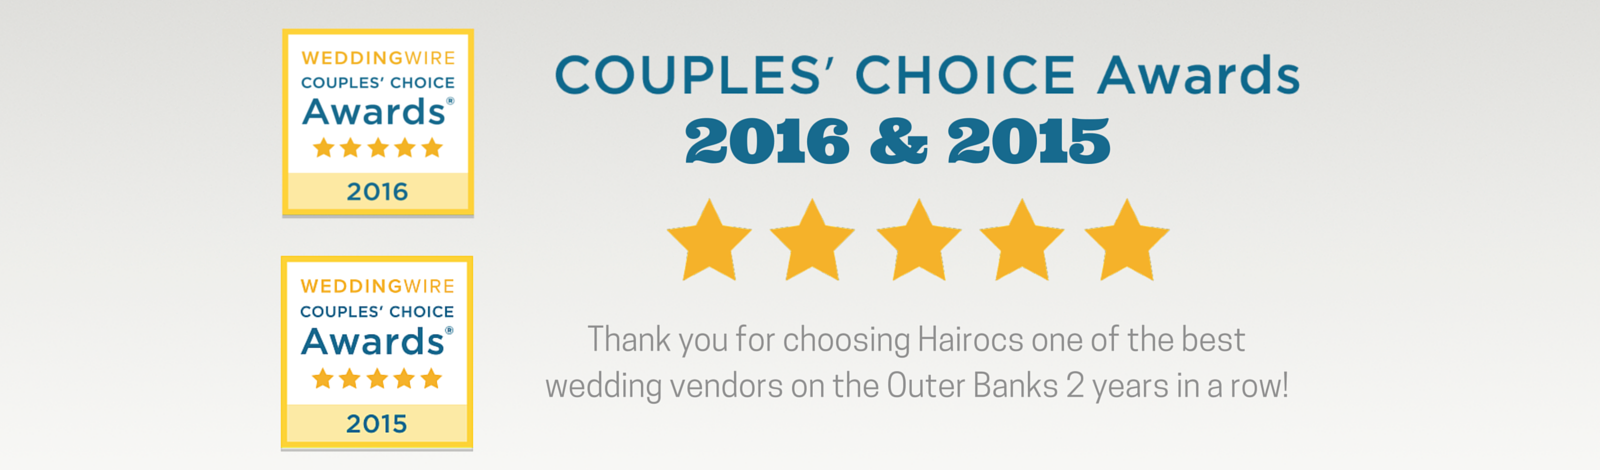 Hairoics-CoupleChoiceAwards2016-weddingwire-bg-final3